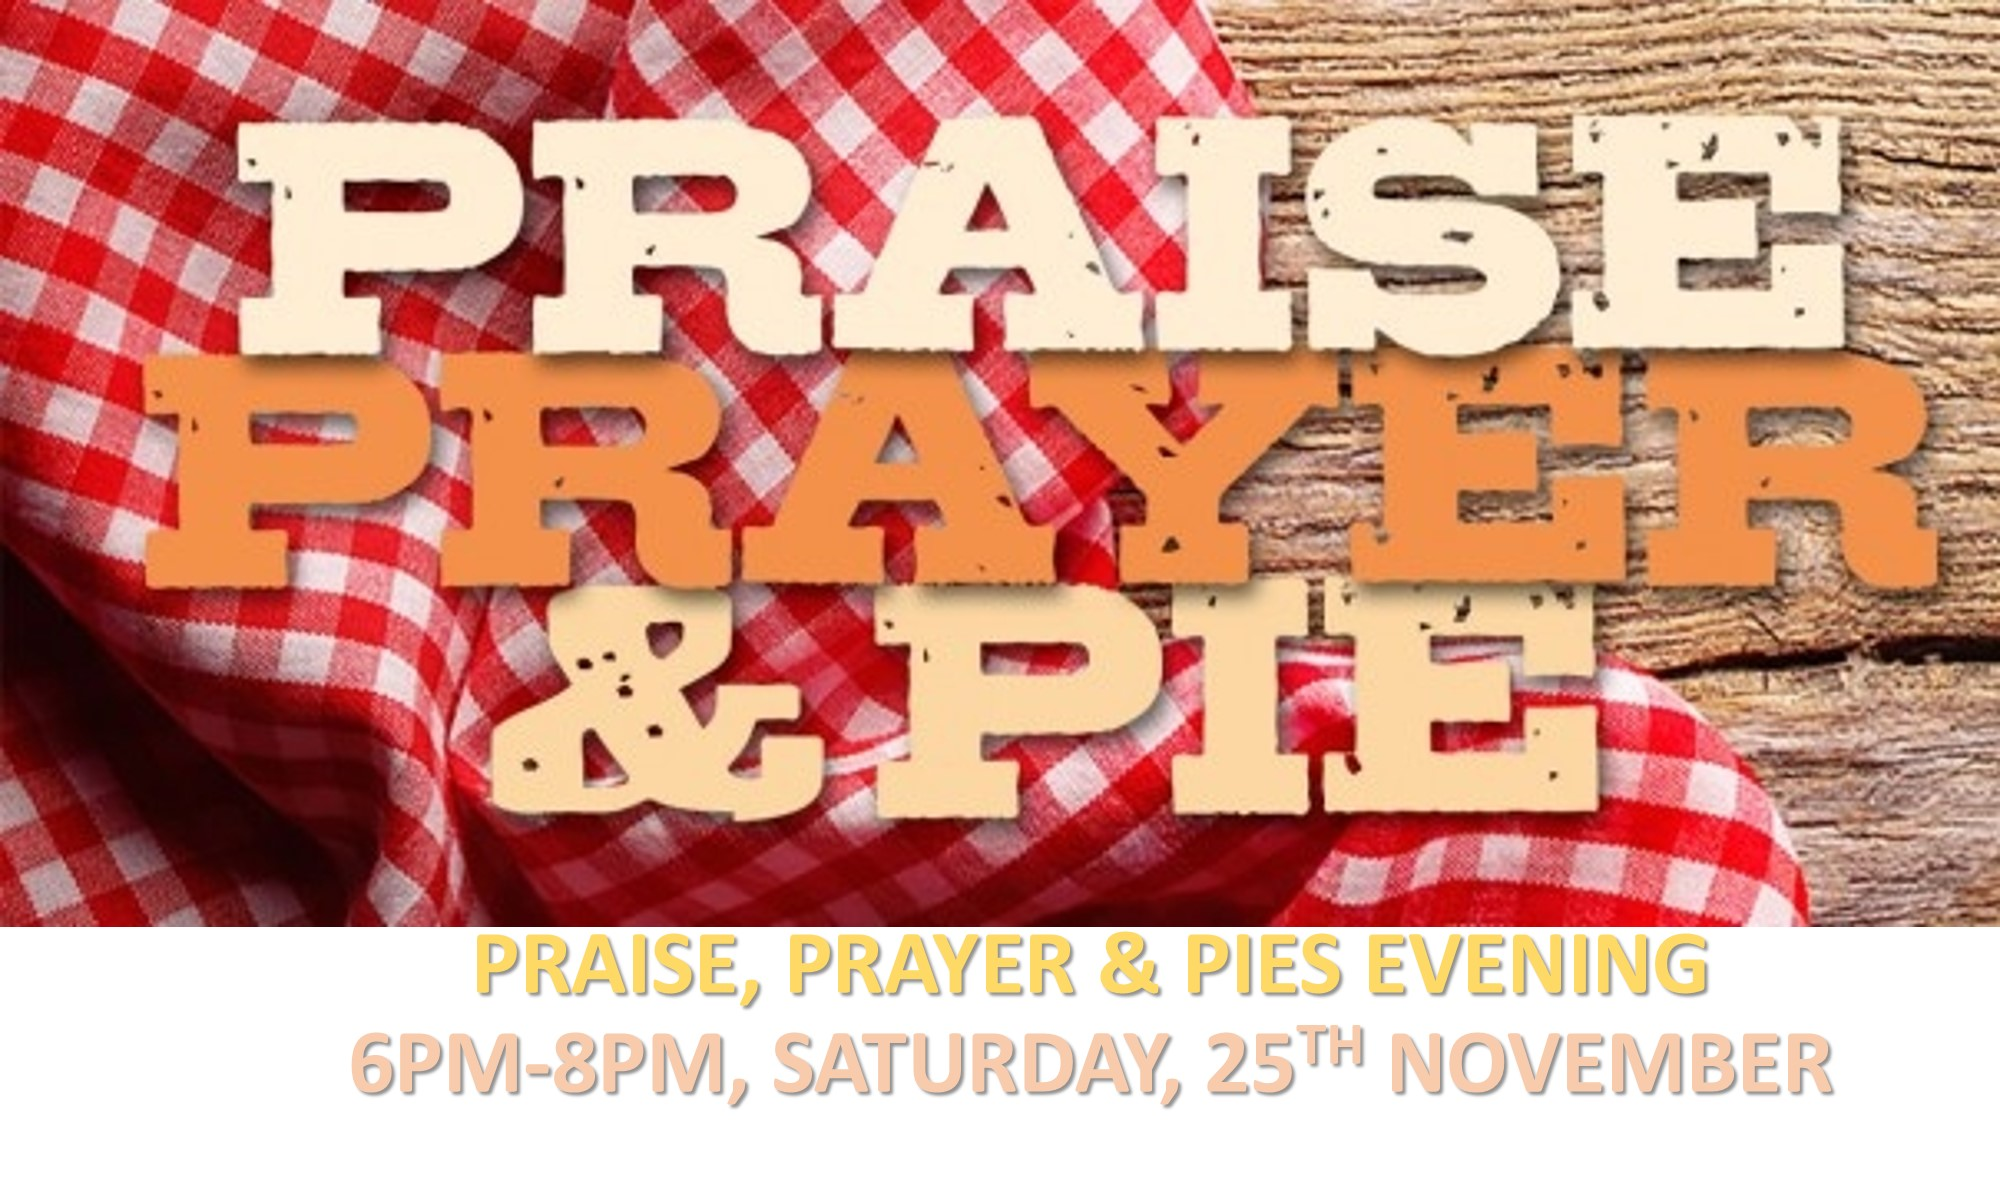 PRAYER PRAISE AND PIES.jpg